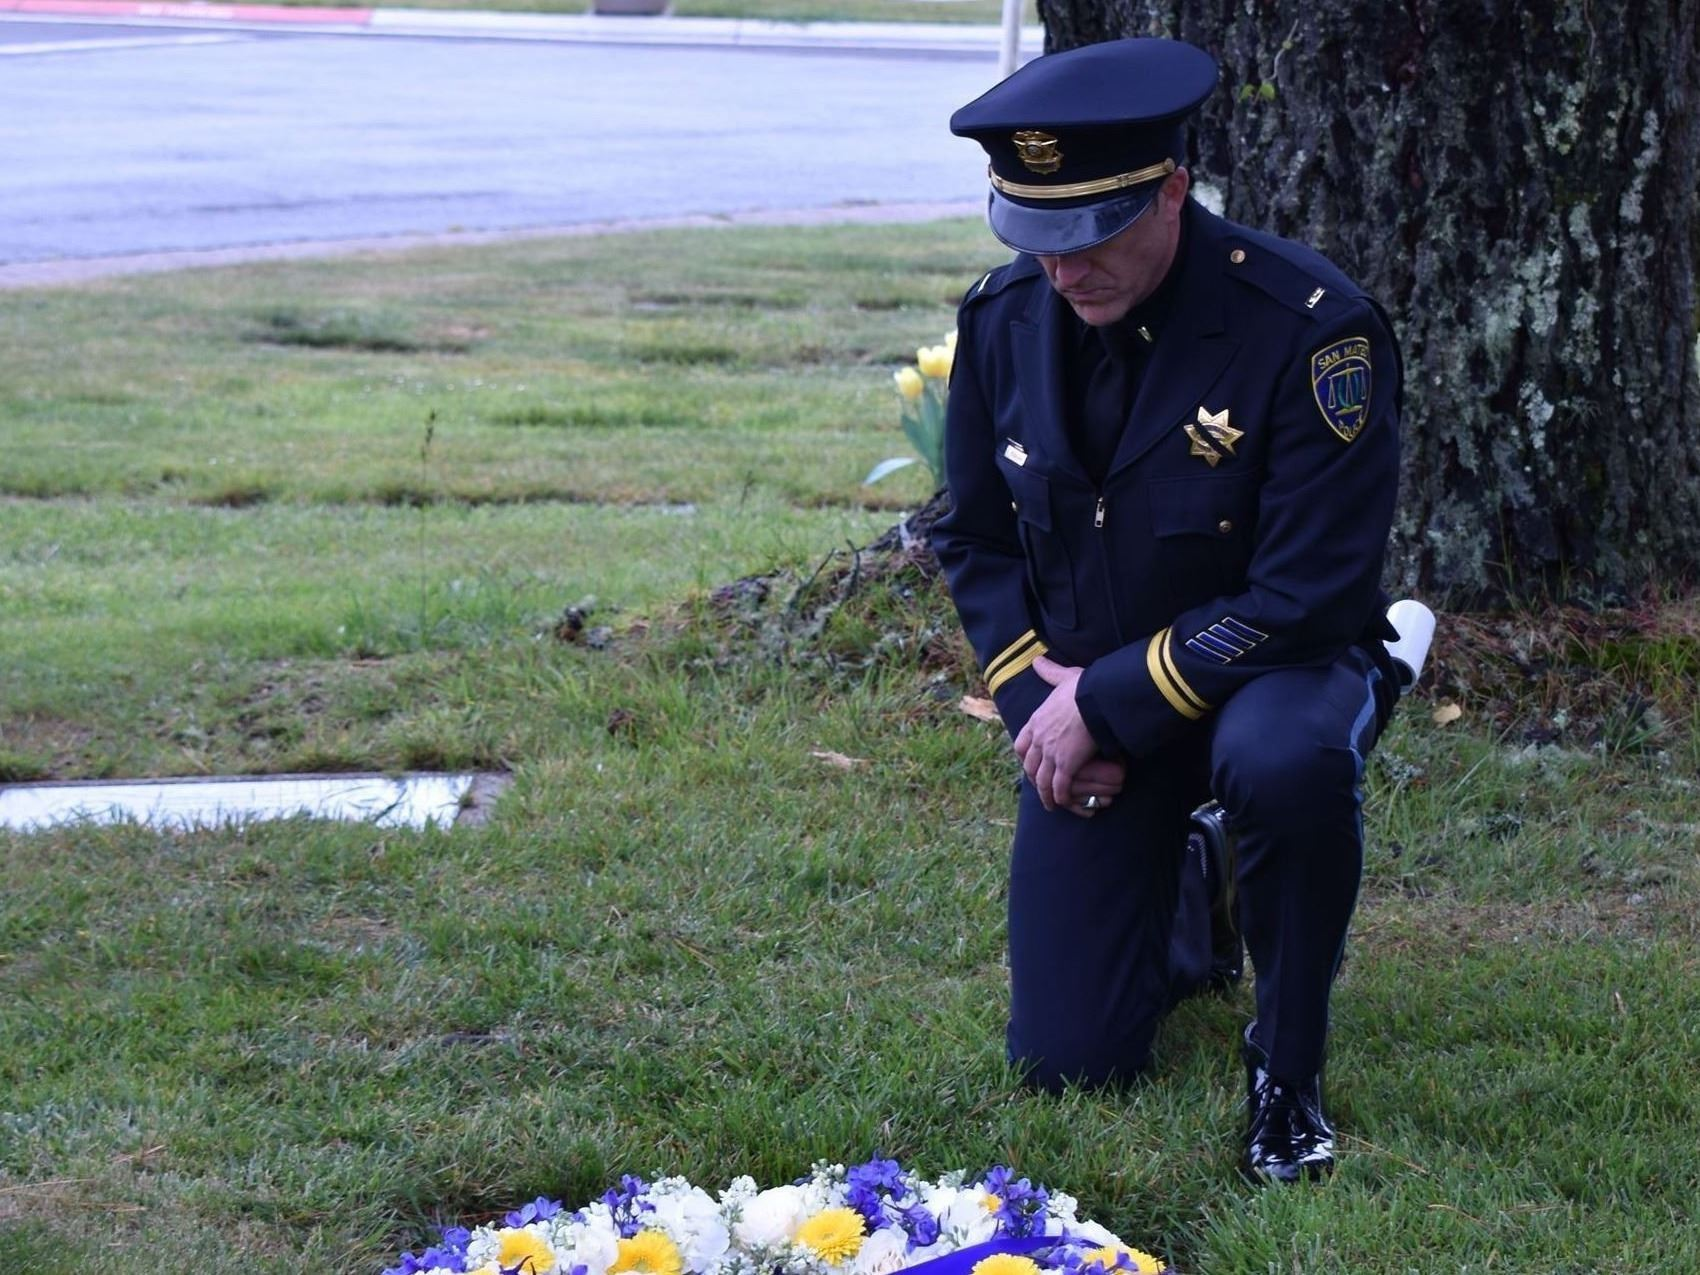 Officer at grave site of Sgt. Joinville.